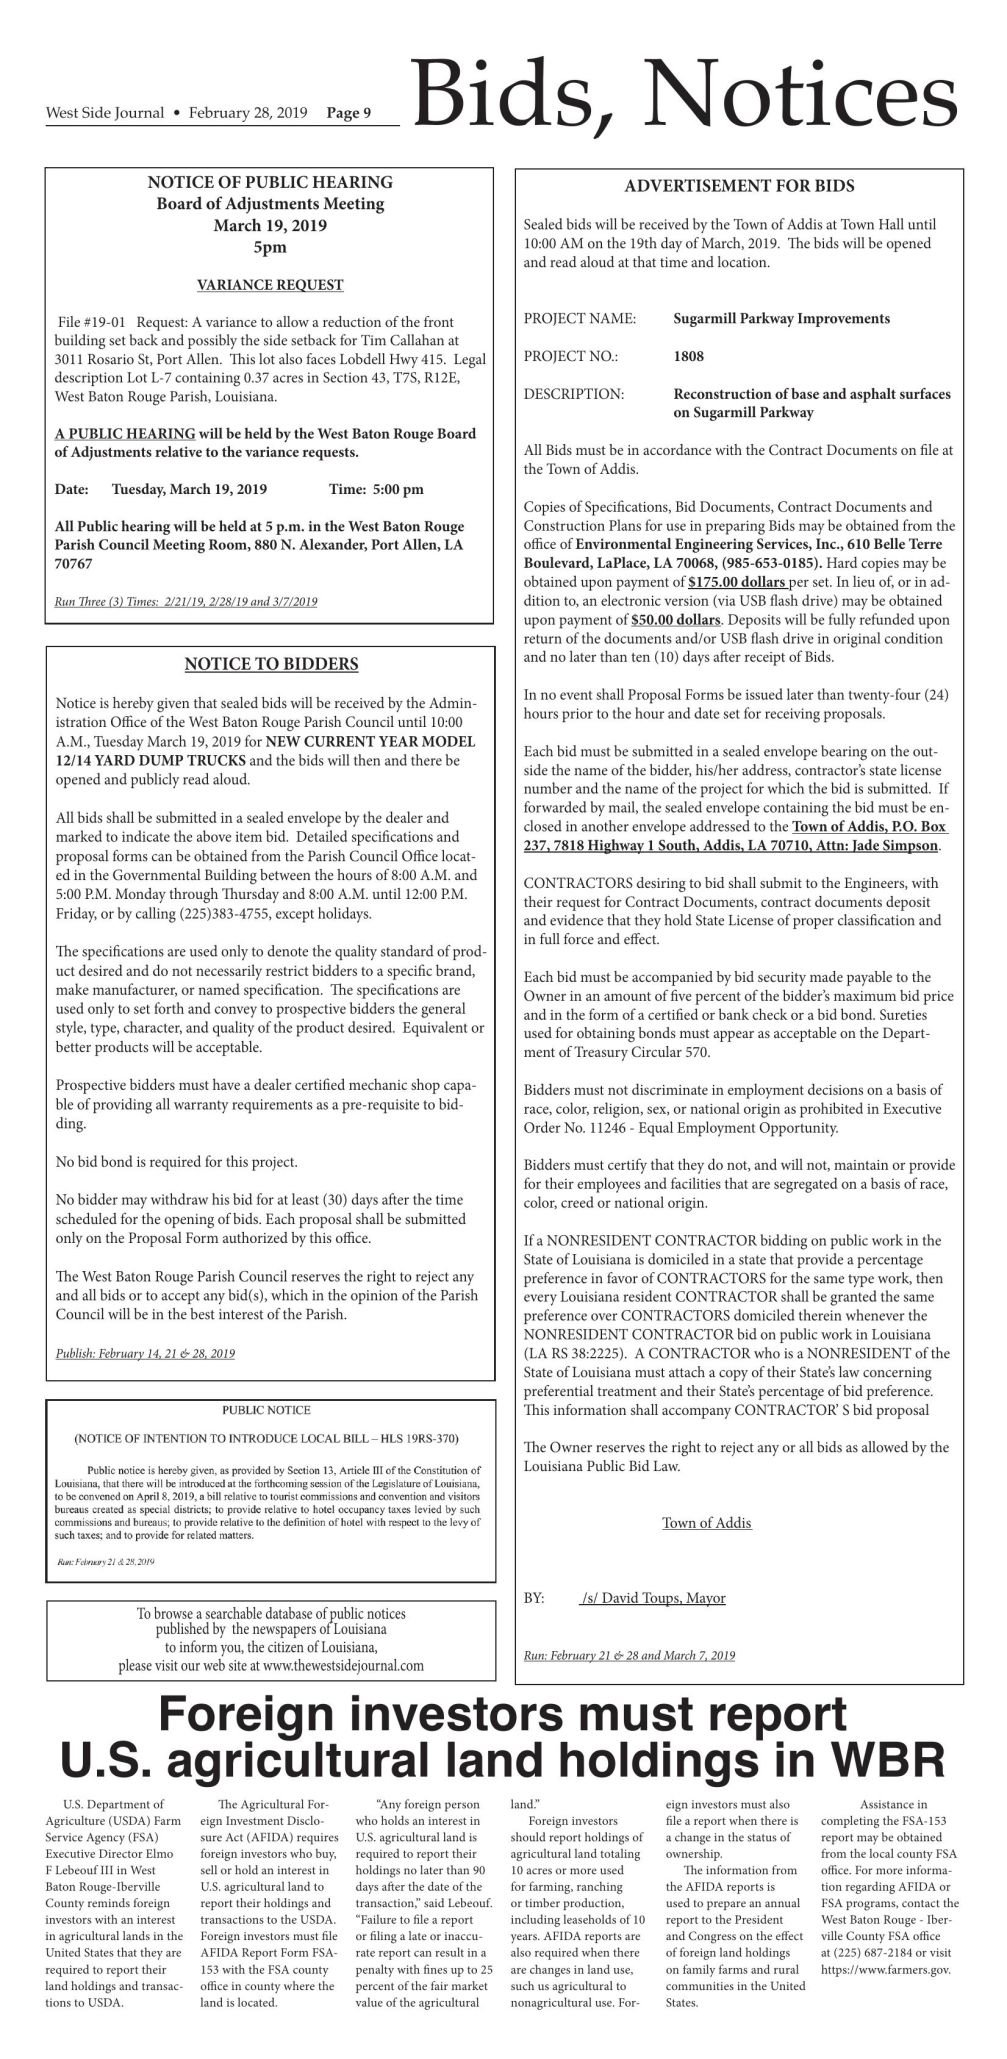 Bids and Notices 02.28.19